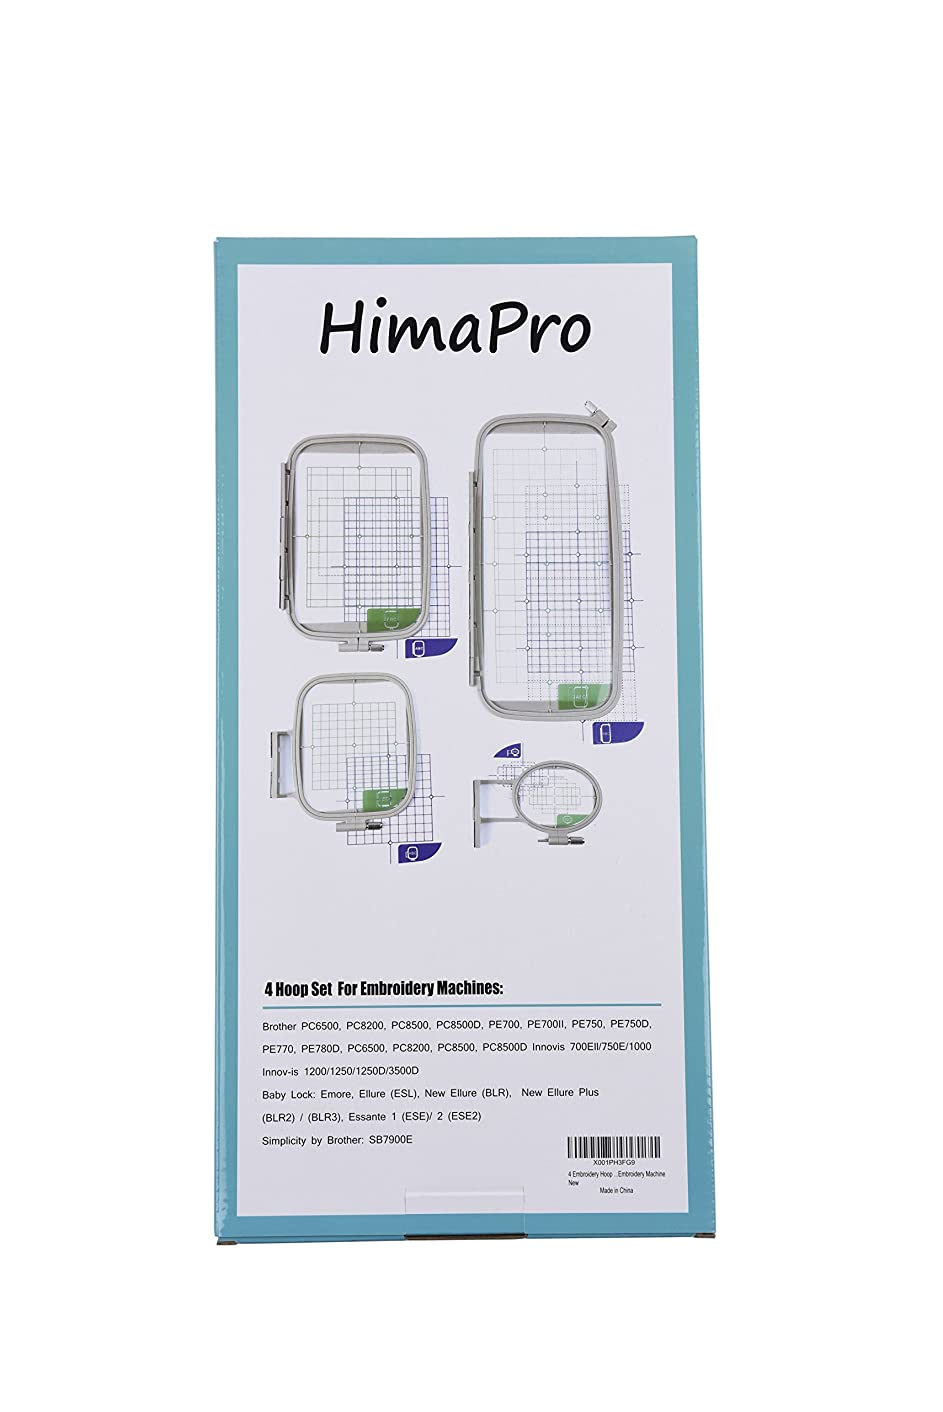 4pc Embroidery Hoop Set for Brother Embroidery Machine PC6500, PC8200, PC8500, PC8500D, PE700, PE700II, PE750, PE750D, PE770, PE800, PC6500, PC8200, PC8500, PC8500D Innovis 700Ell/750E/1000